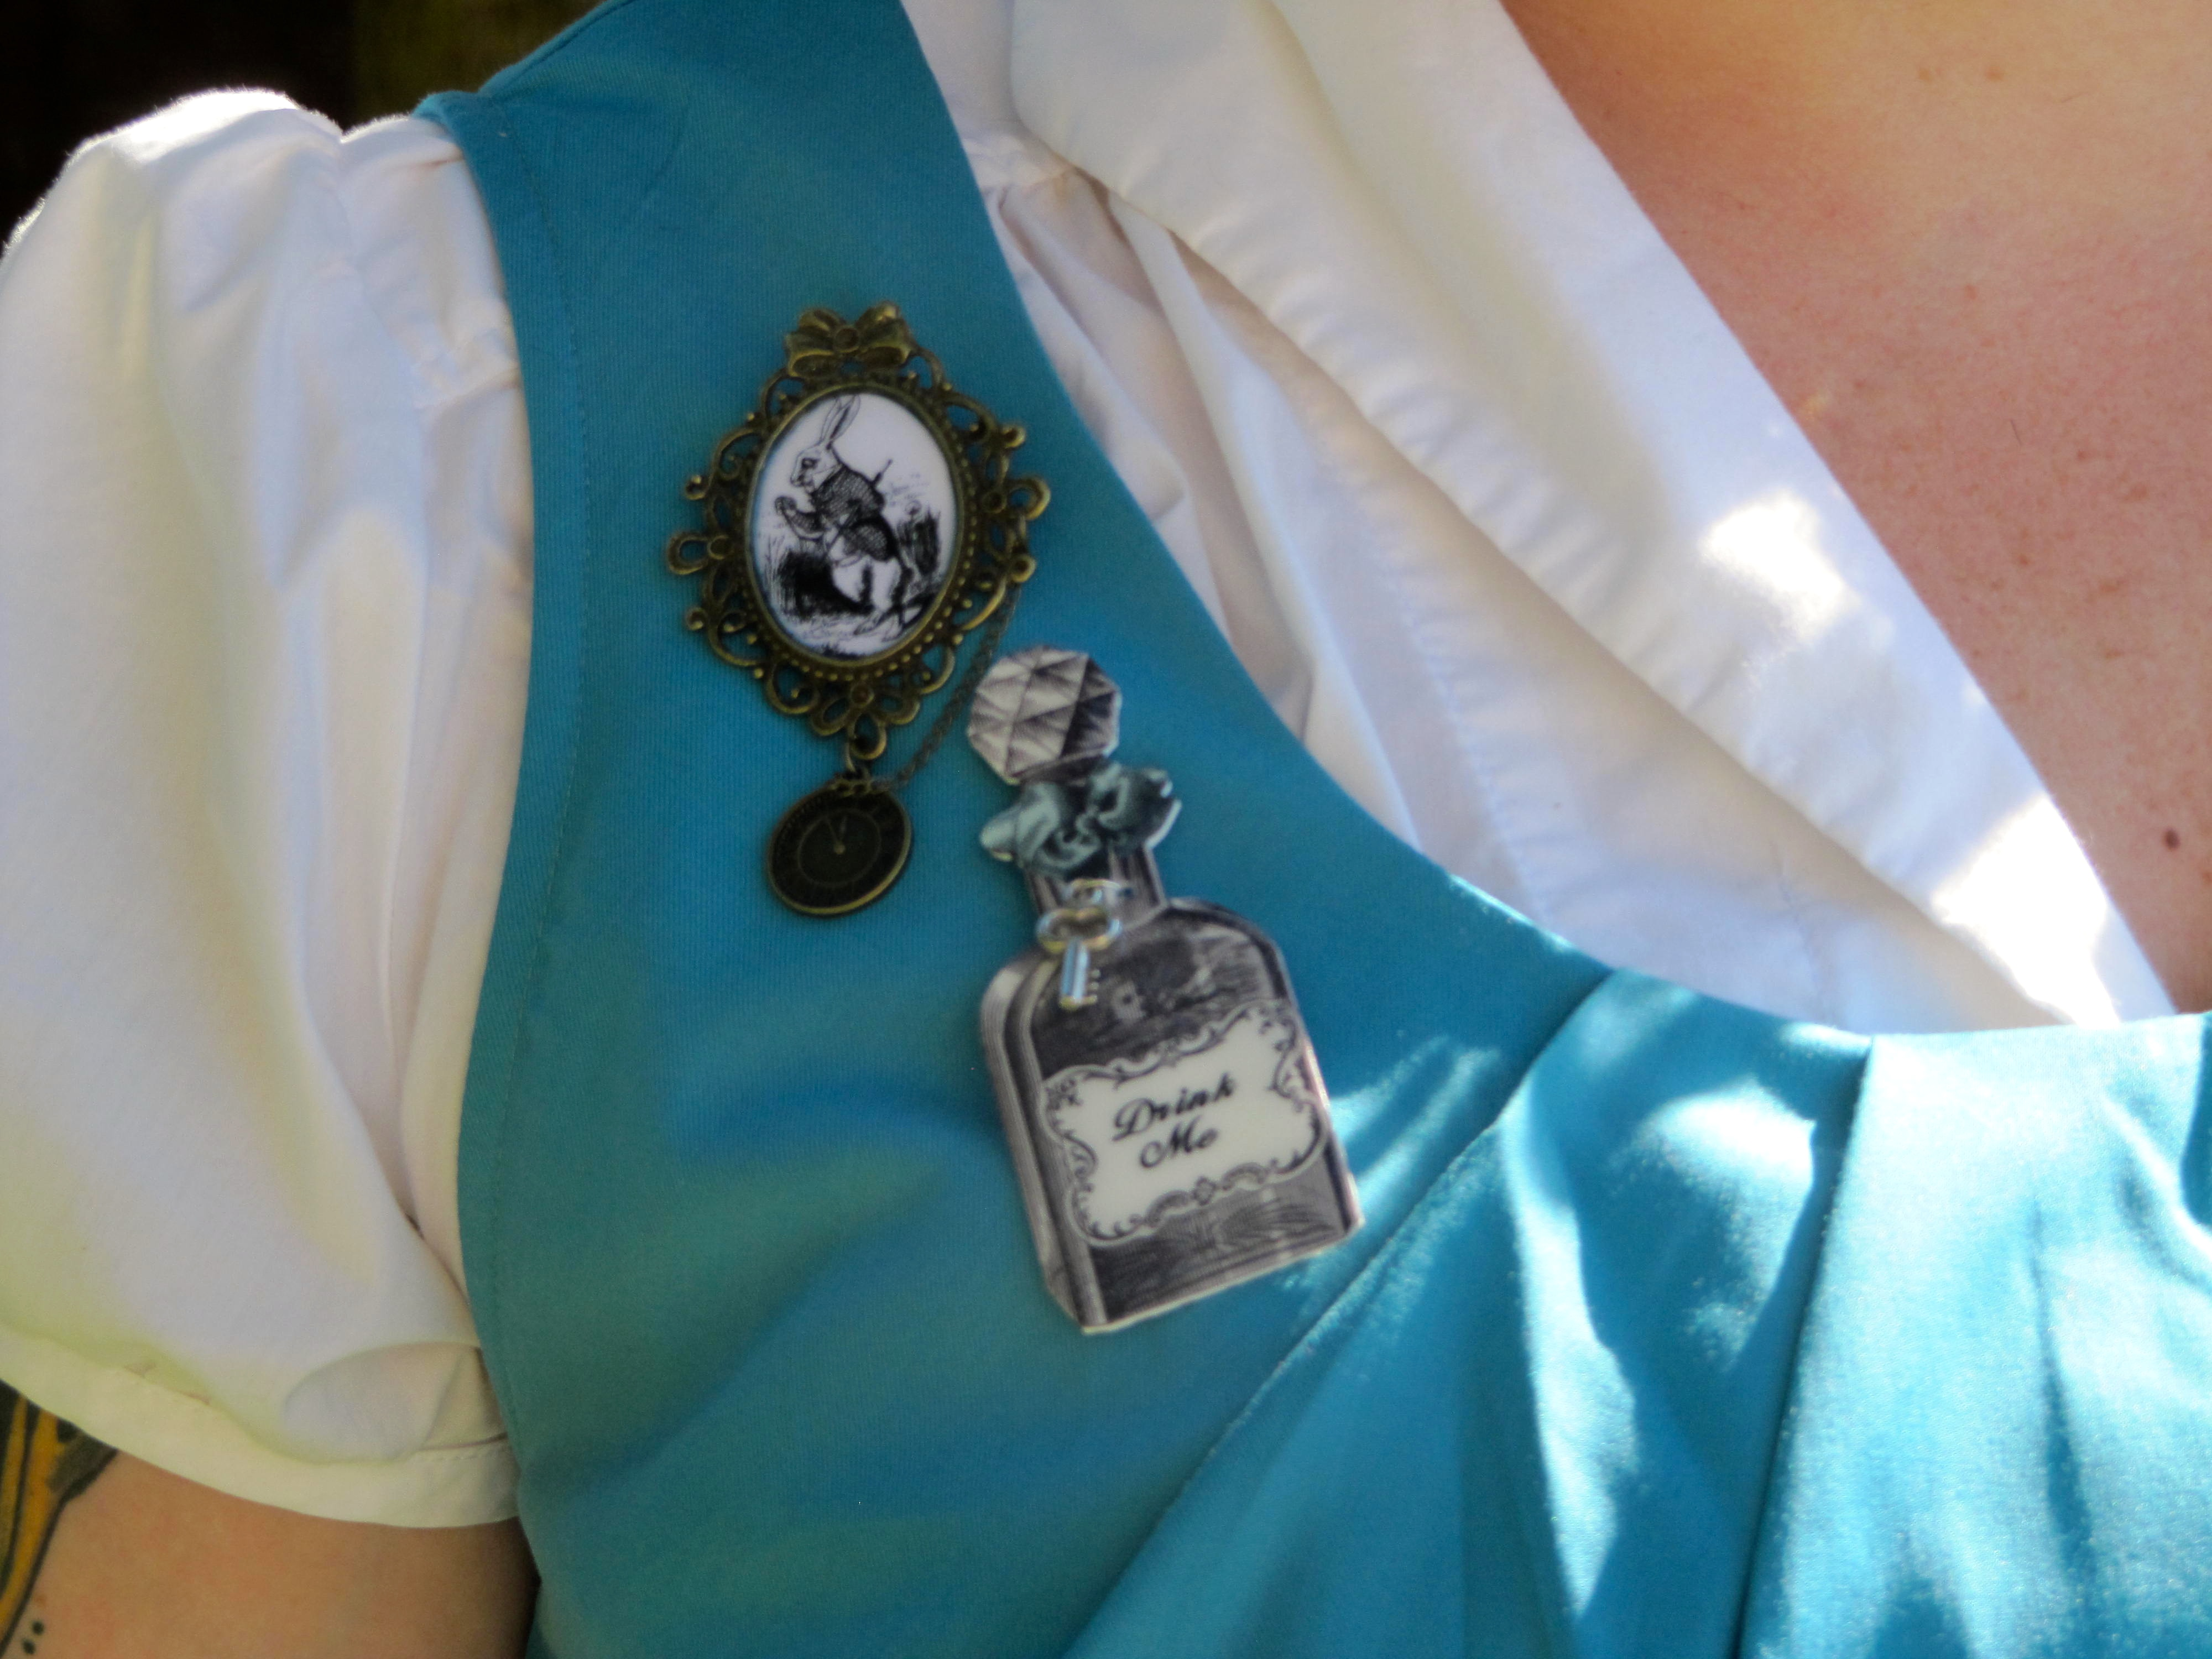 First day at EPCOT as Alice in Wonderland